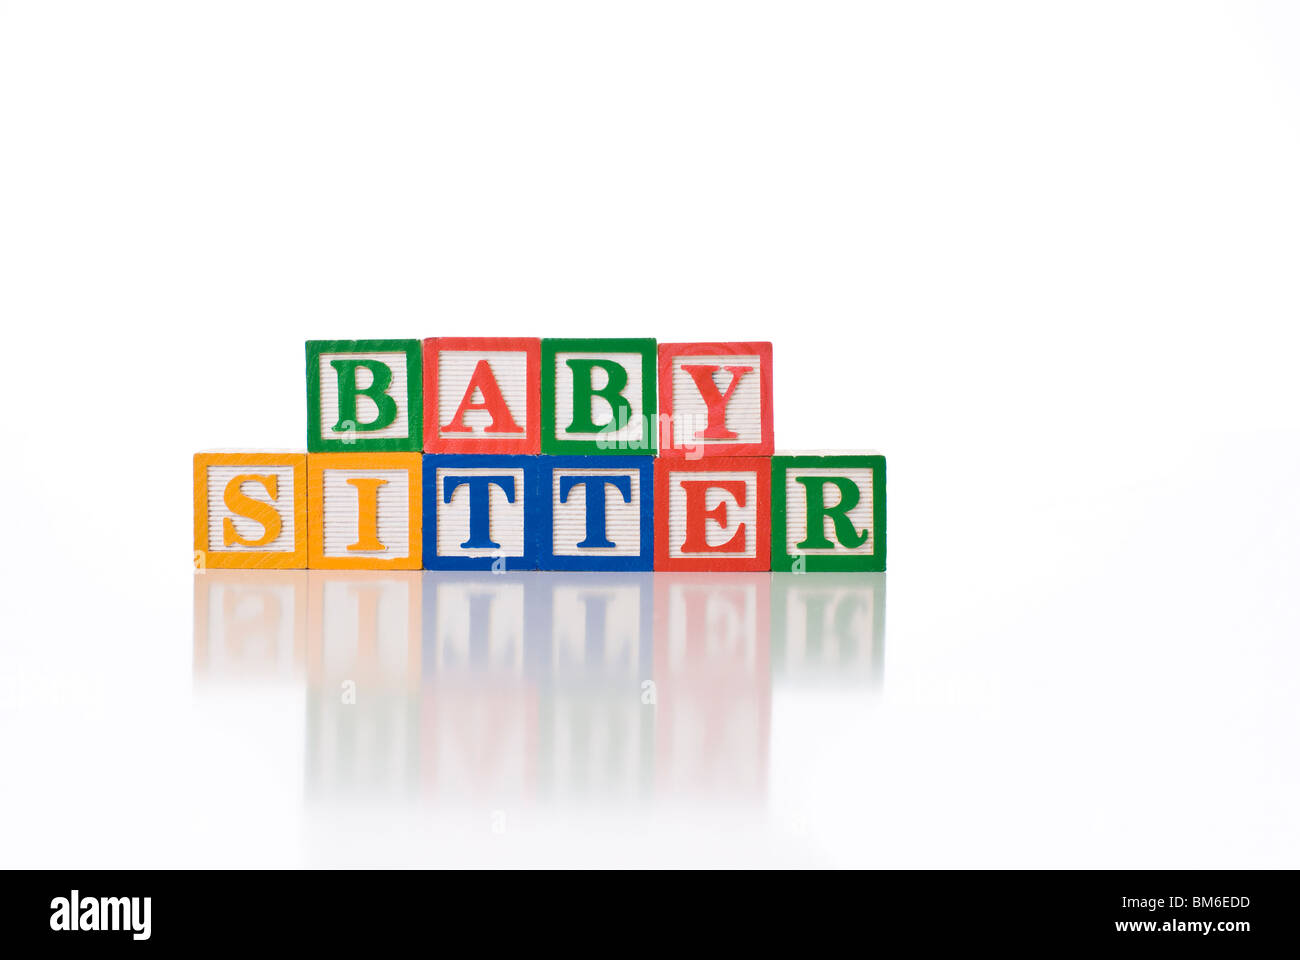 colorful childrens blocks spelling the words baby sitter